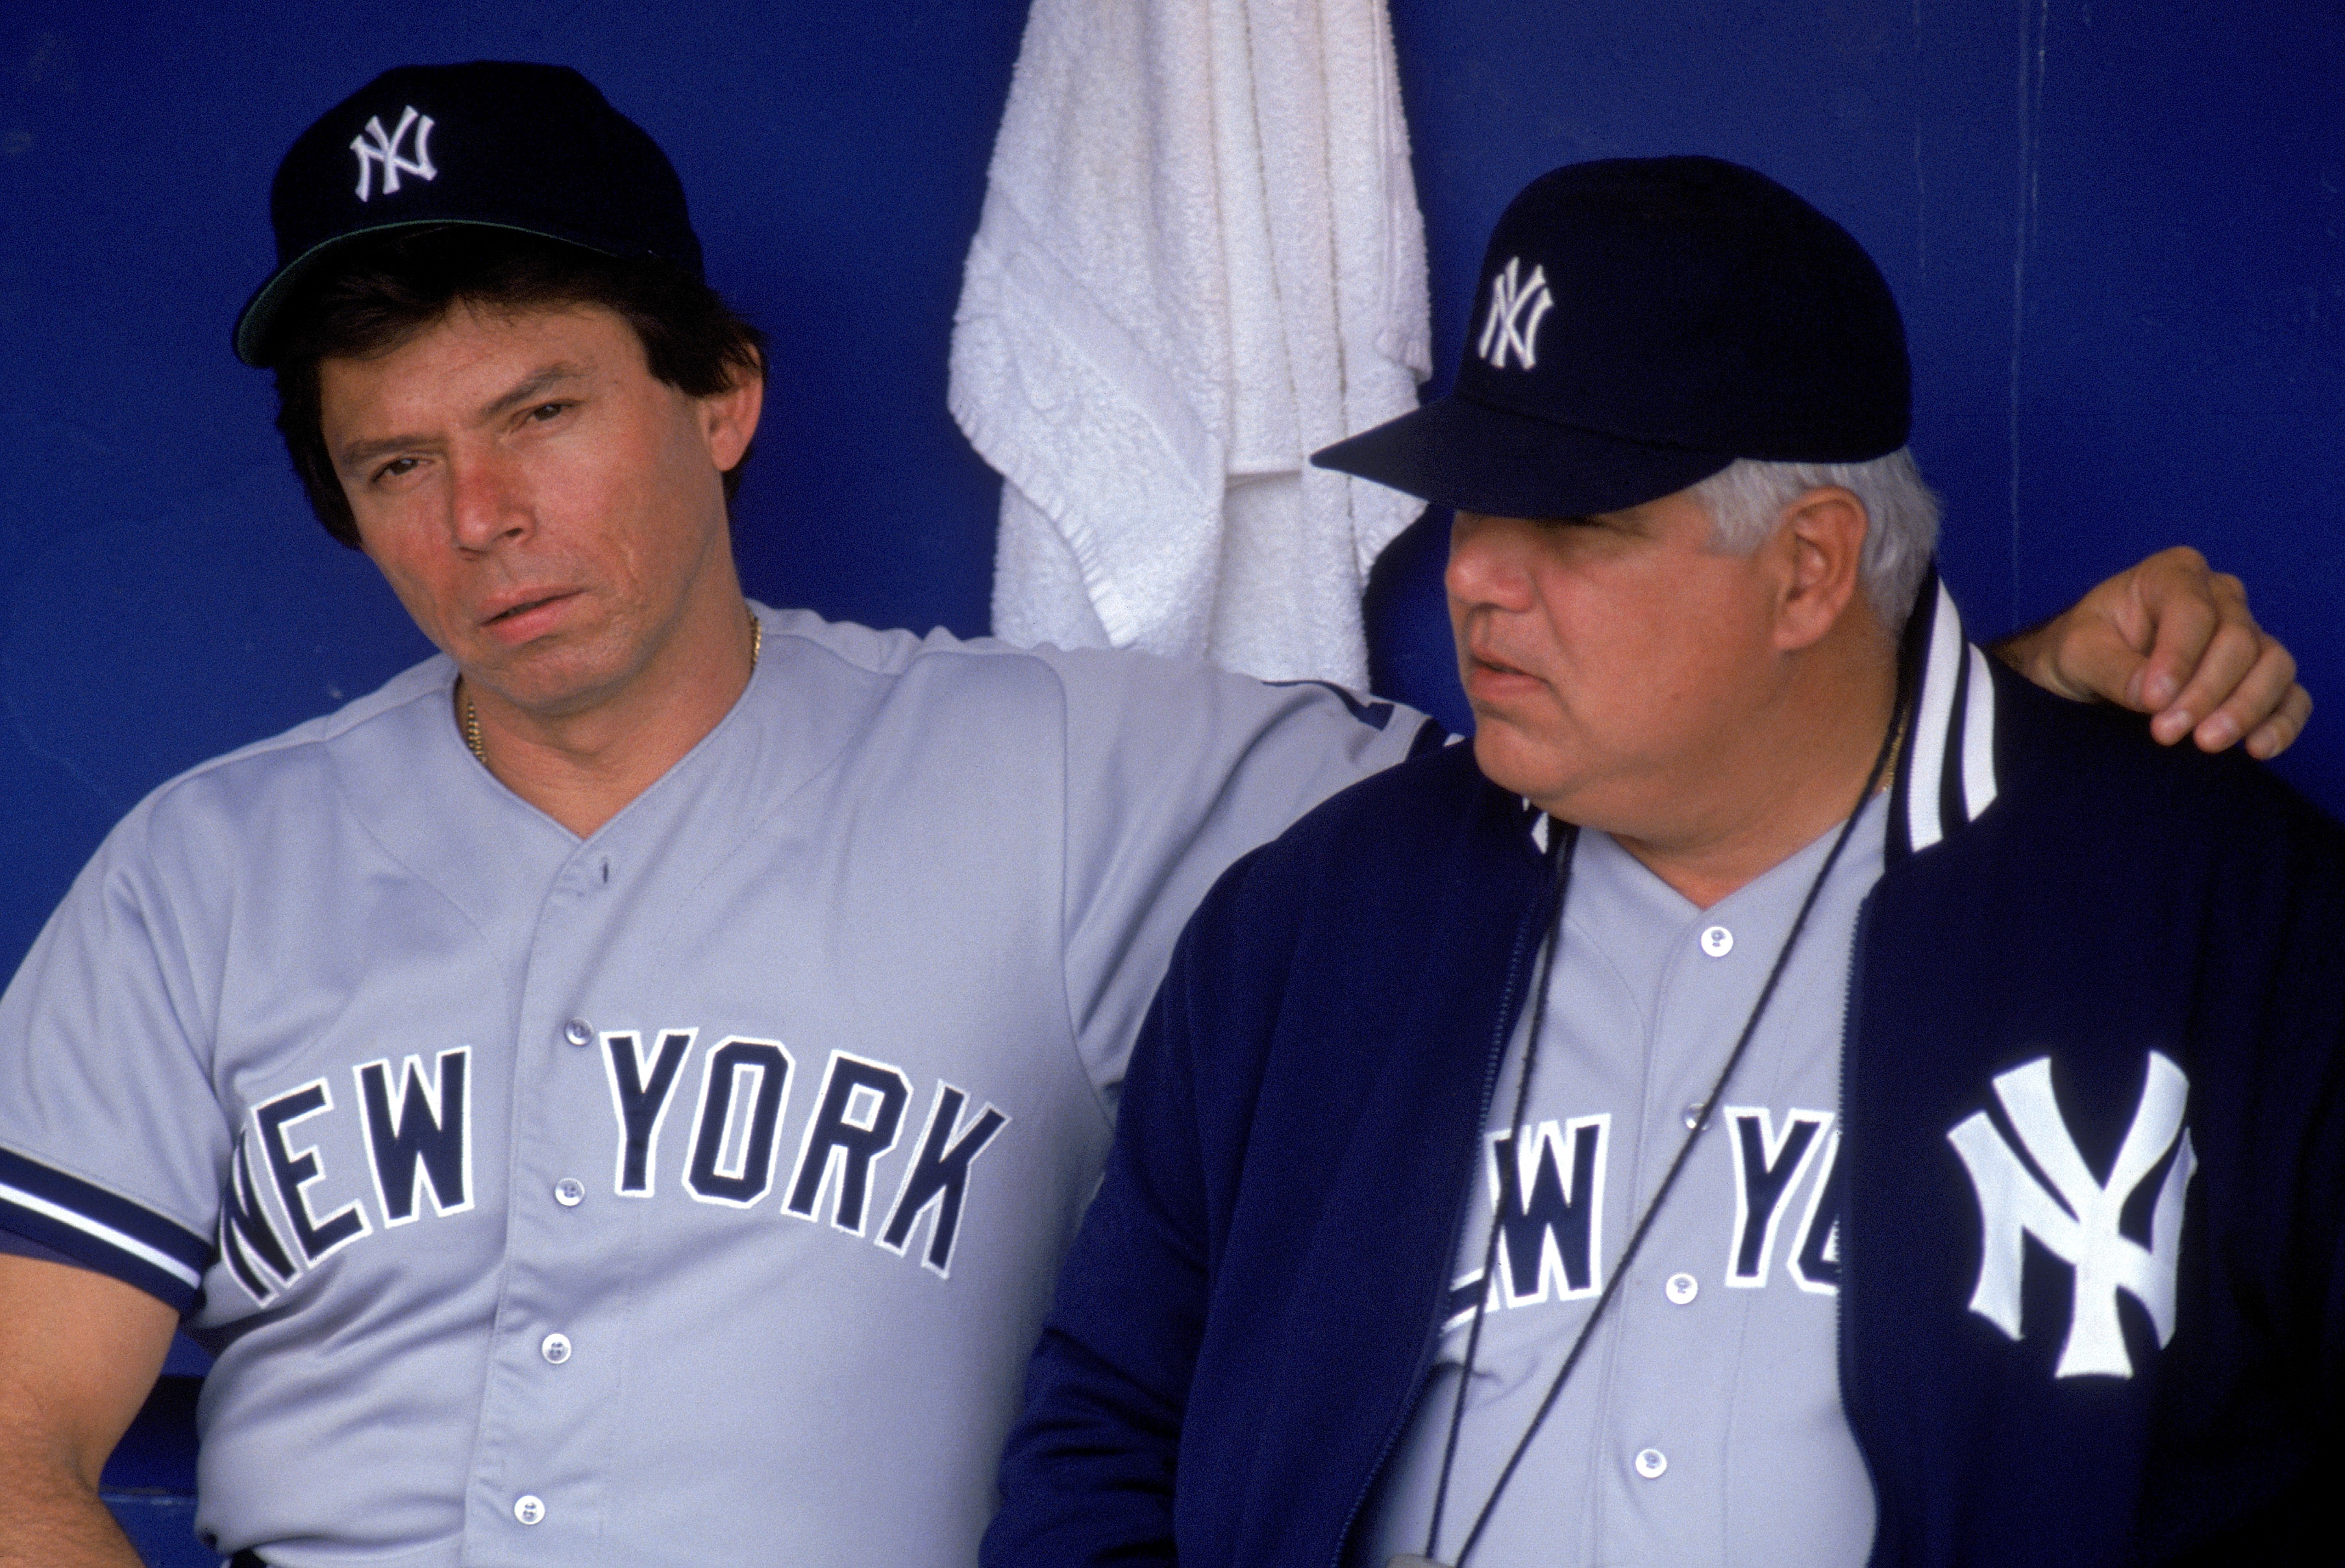 1990:  (L-R) Coach Darrell Evans and pitching coach Billy Connors of the New York Yankees sit in the dugout during a 1990 MLB season game.  (Photo by Jonathan Daniel/Getty Images